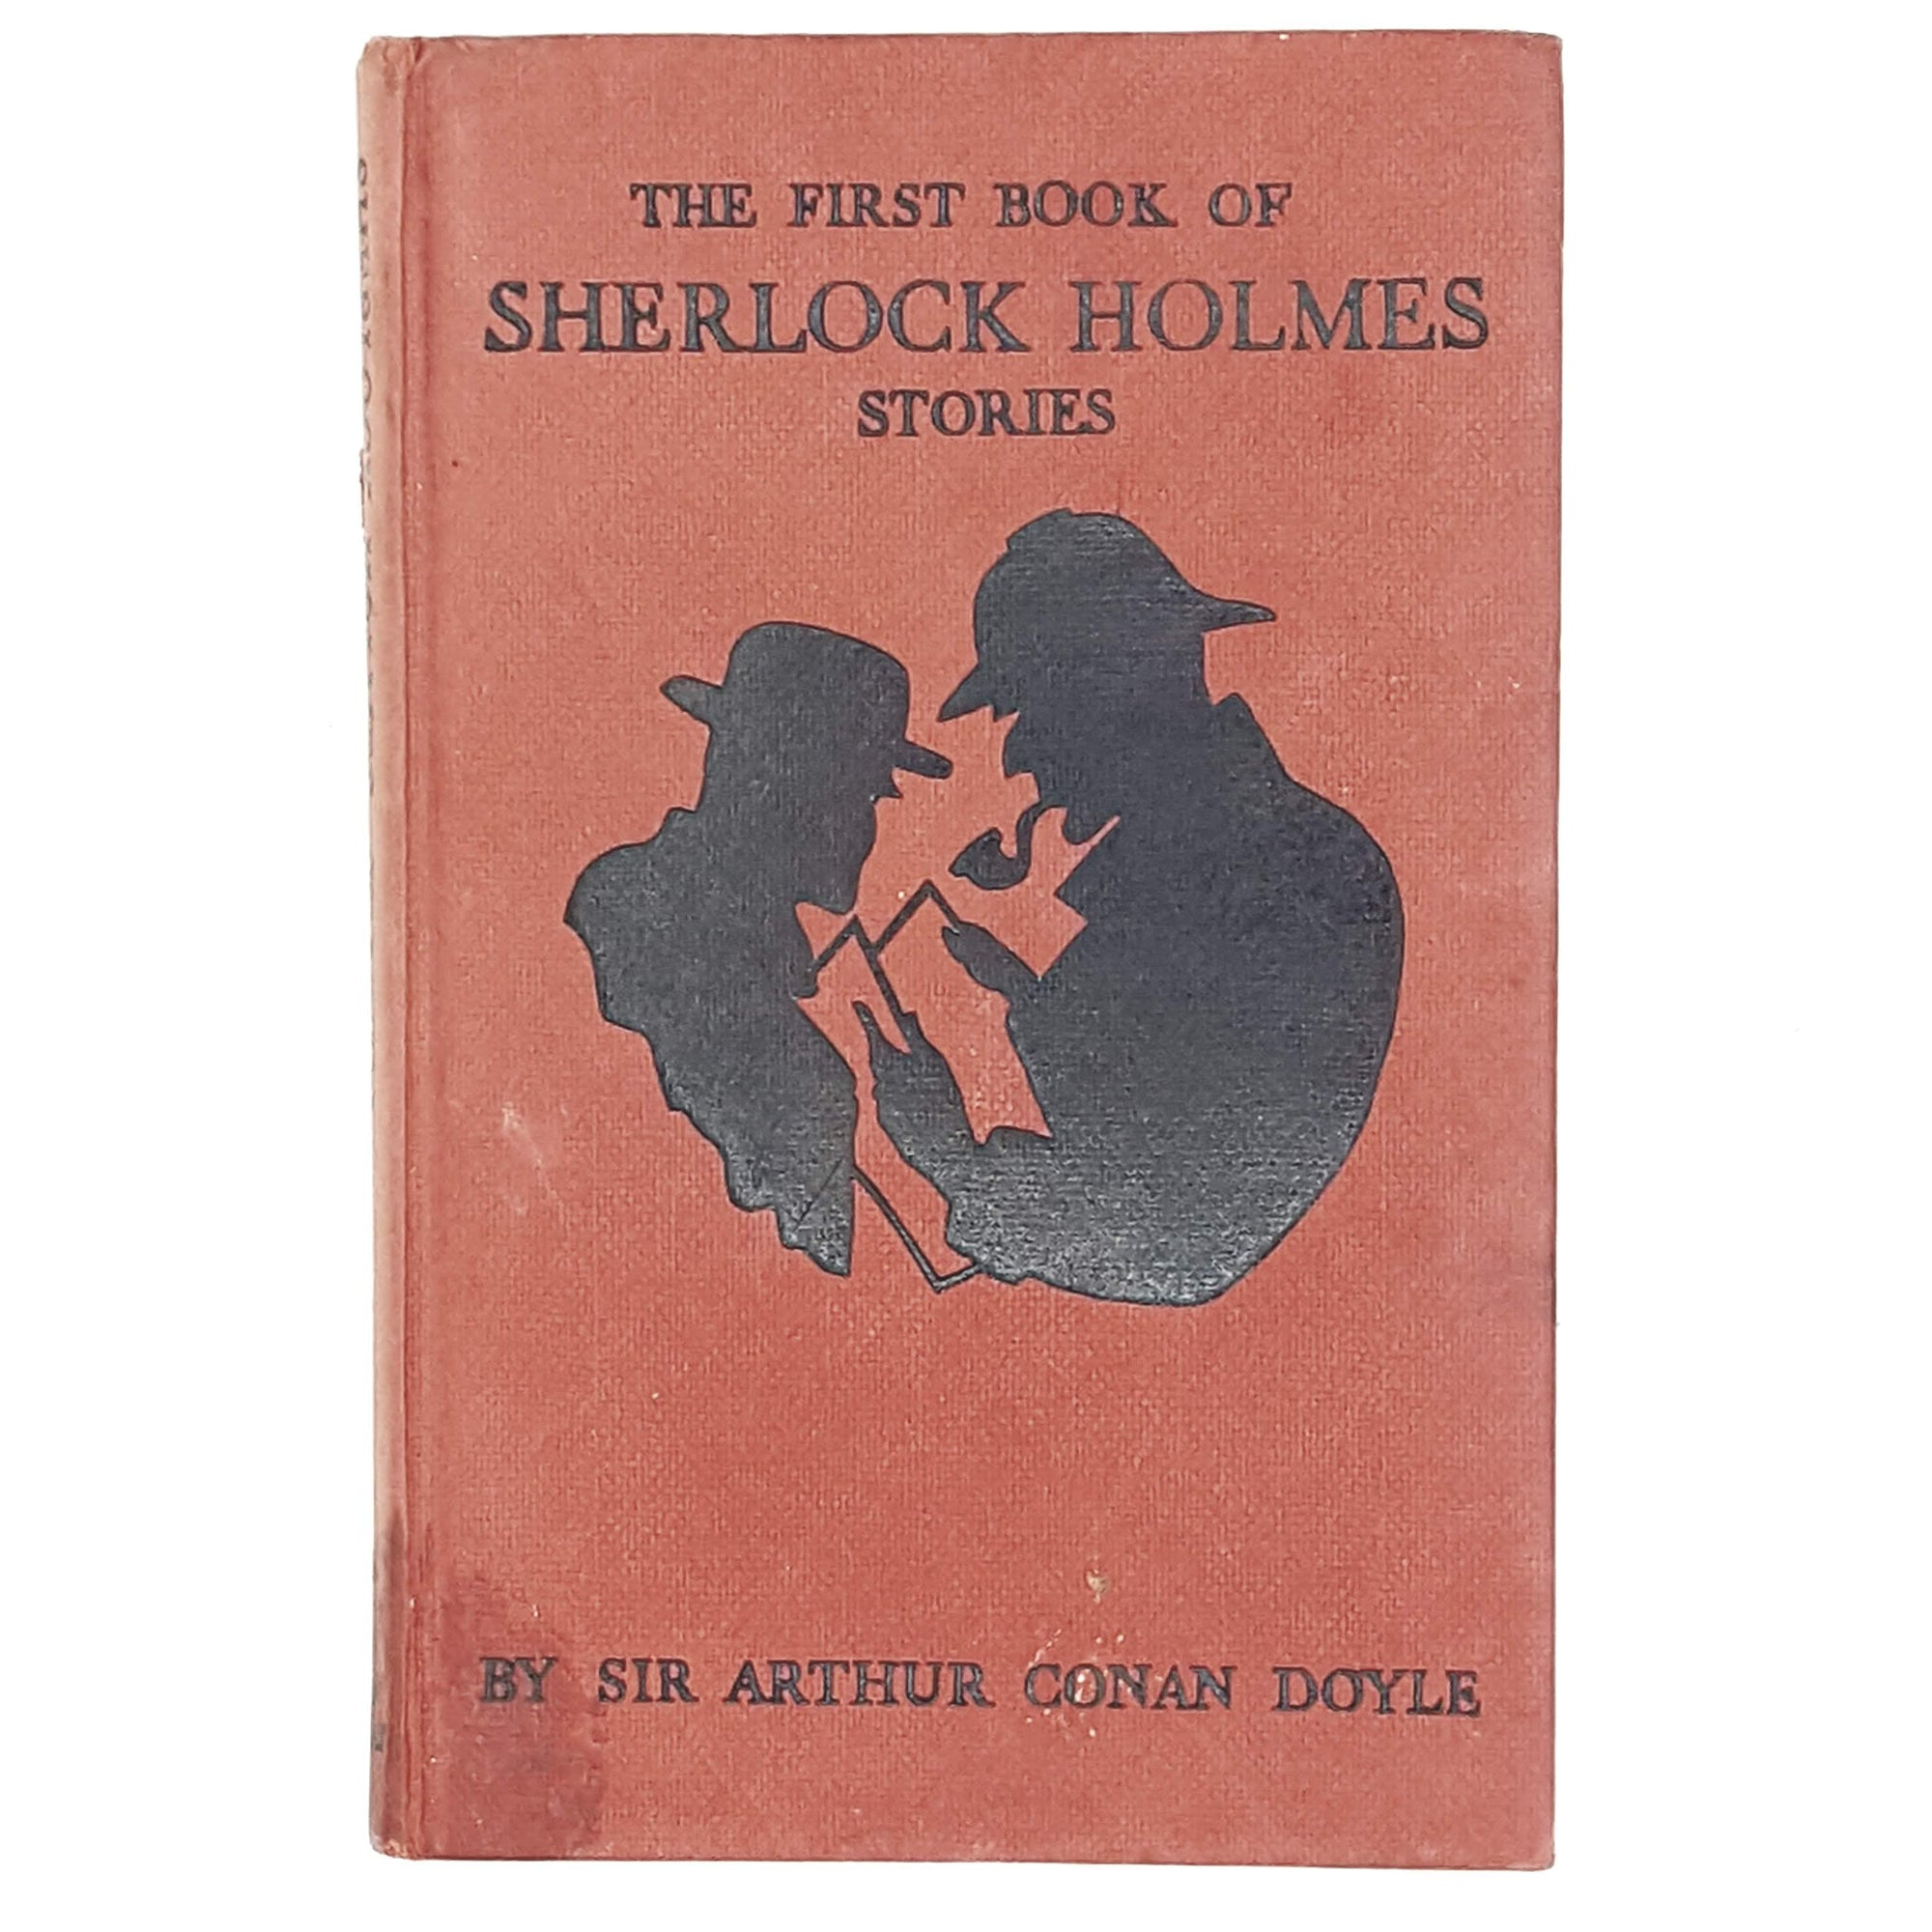 Sir Arthur Conan Doyle's First Book of Sherlock Holmes Stories, illustrated 1960